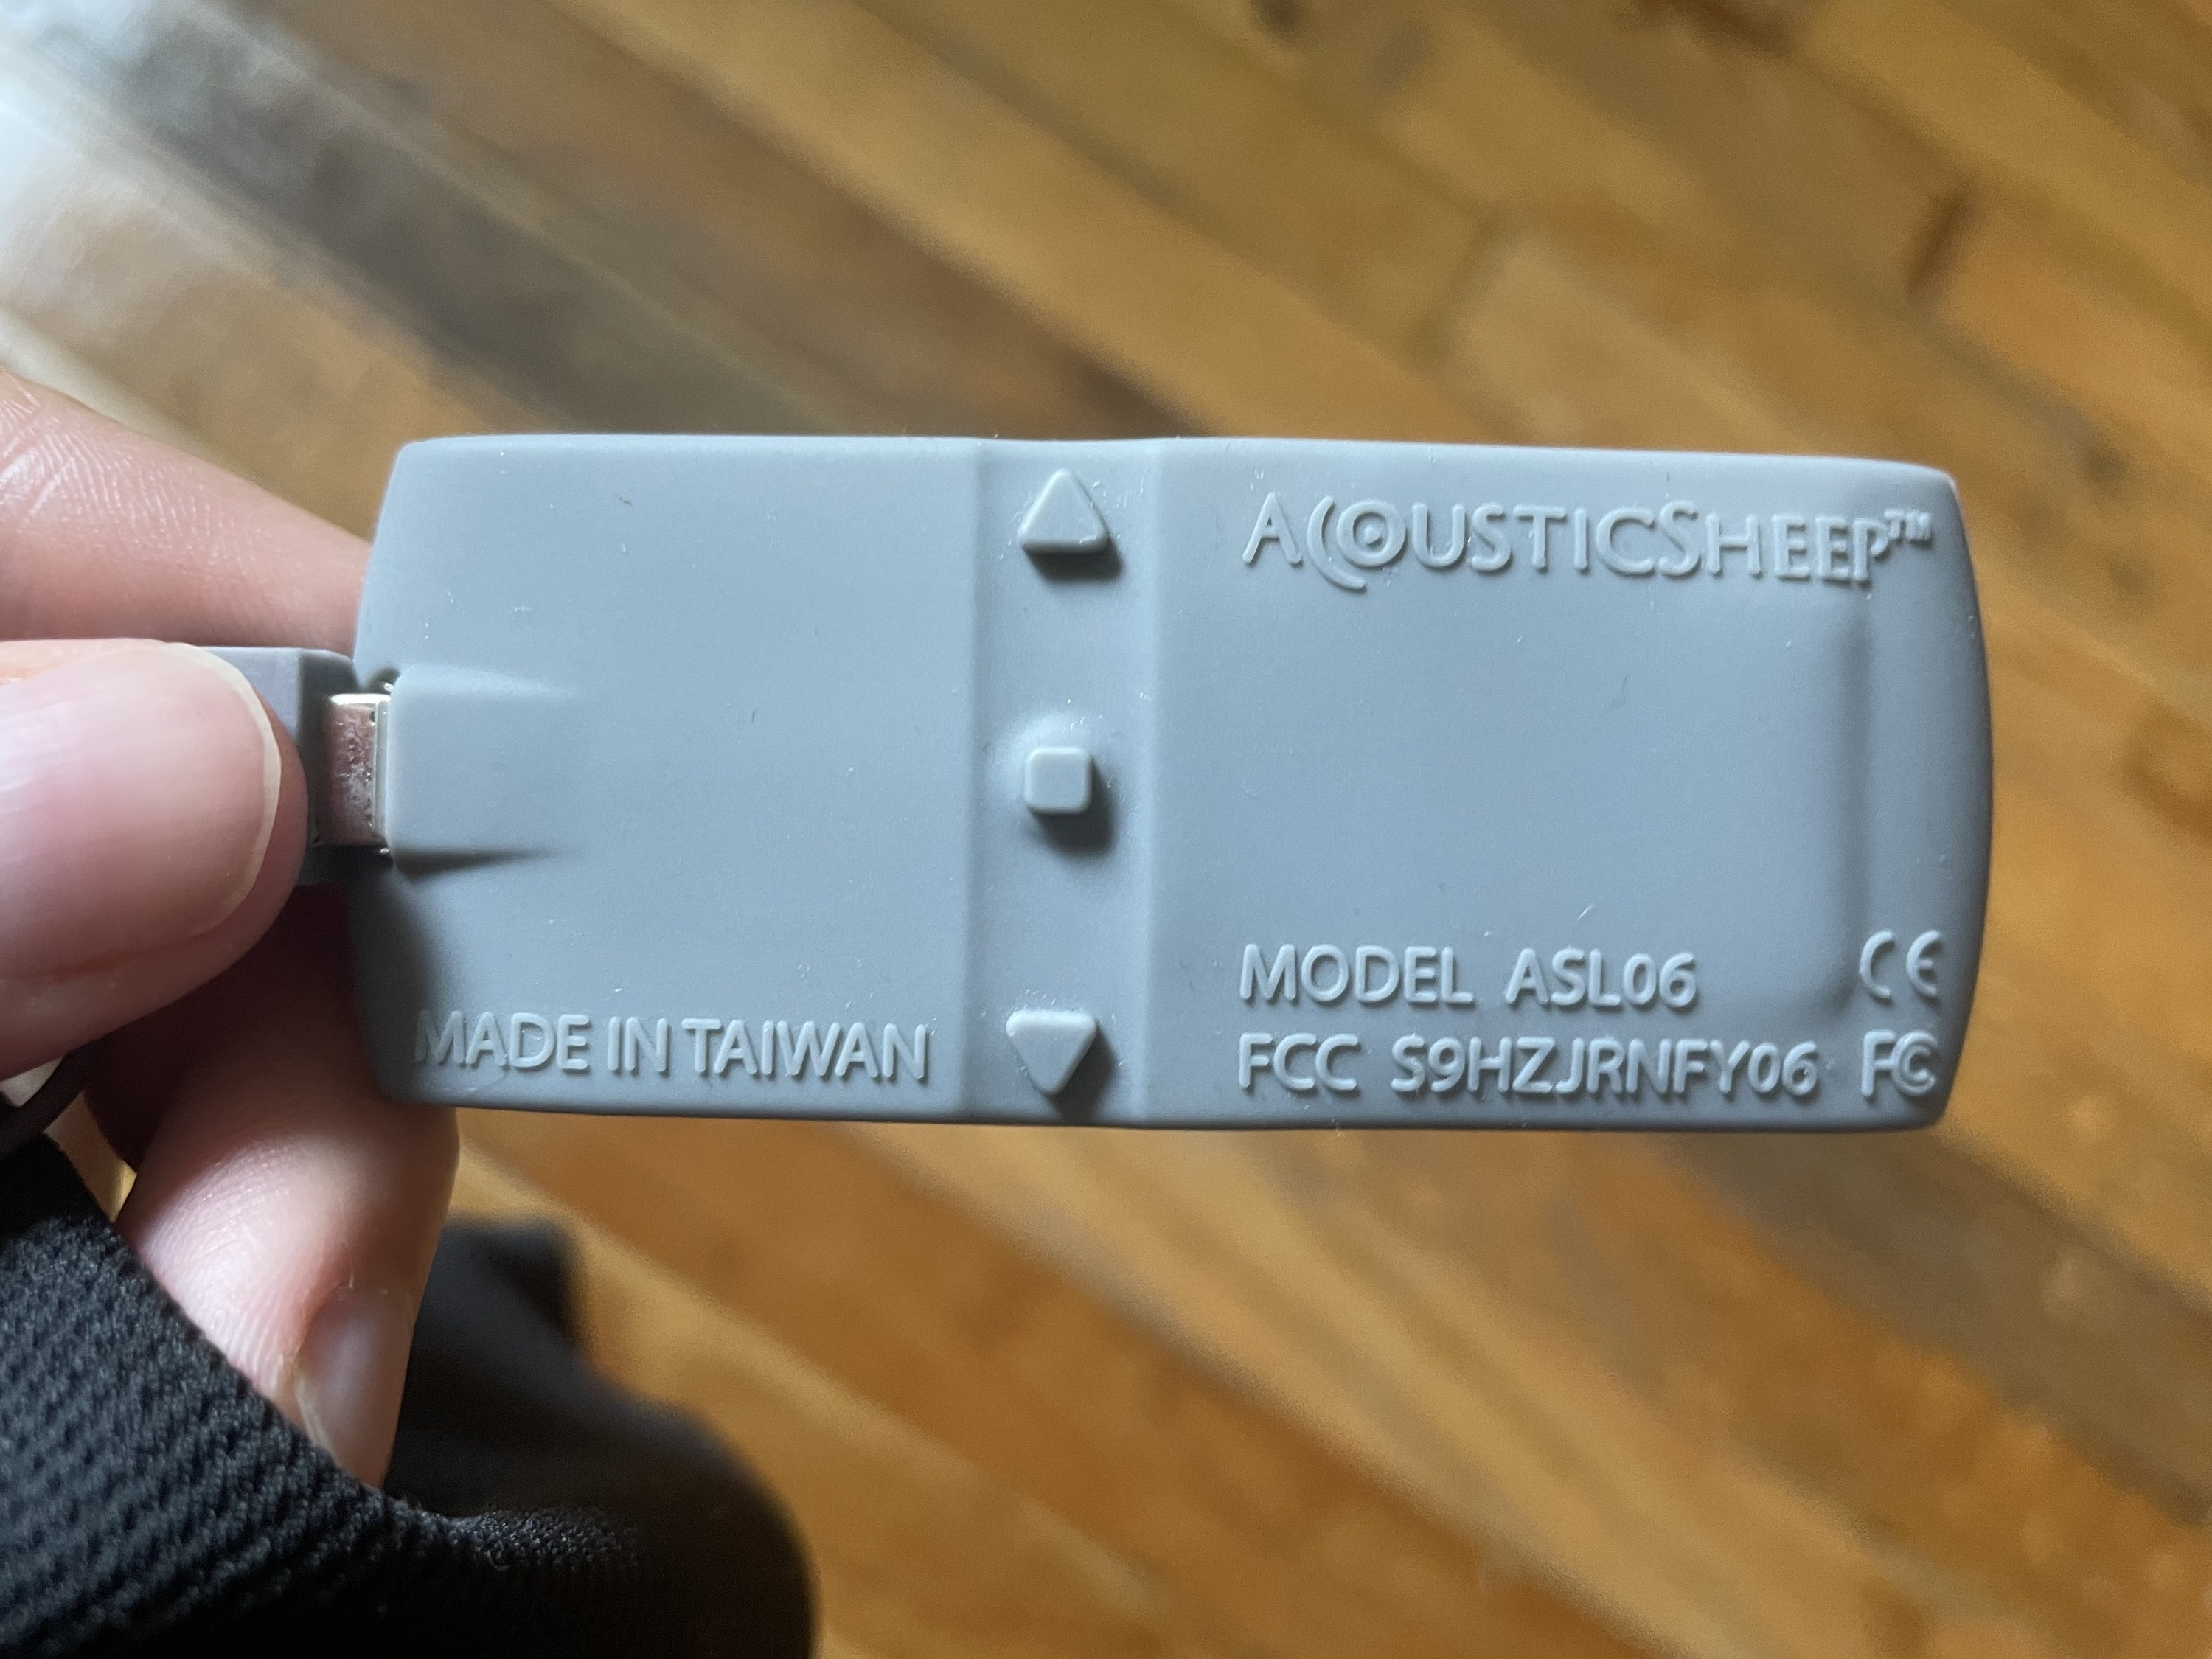 the grey silicone battery pack with an an on/off button and volume up and volume down button, all in a vertical line